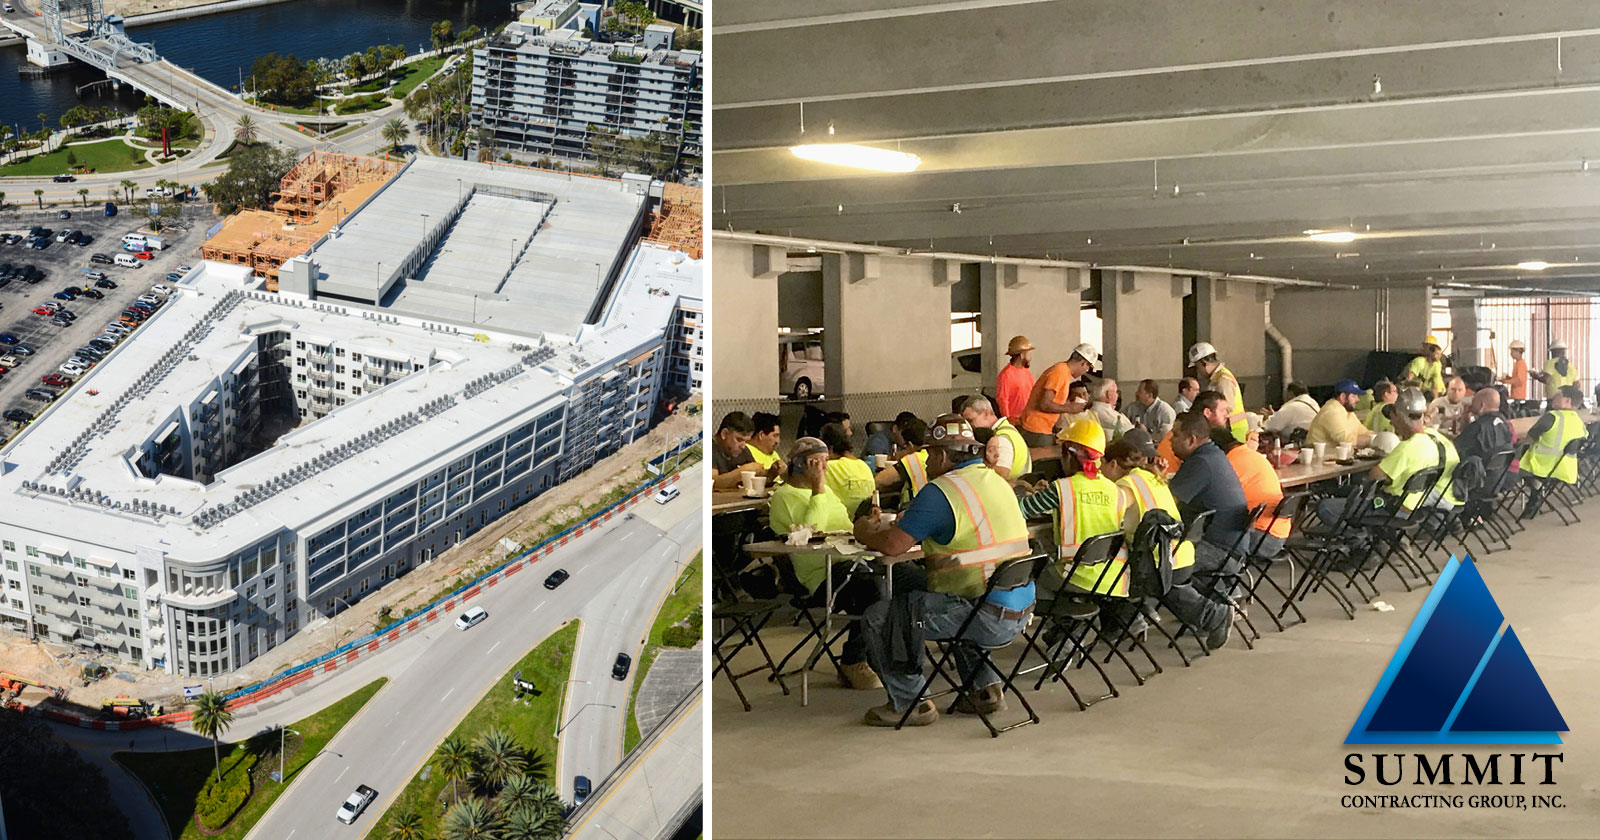 Aerial view of apartment building and a photo of construction workers at lunch